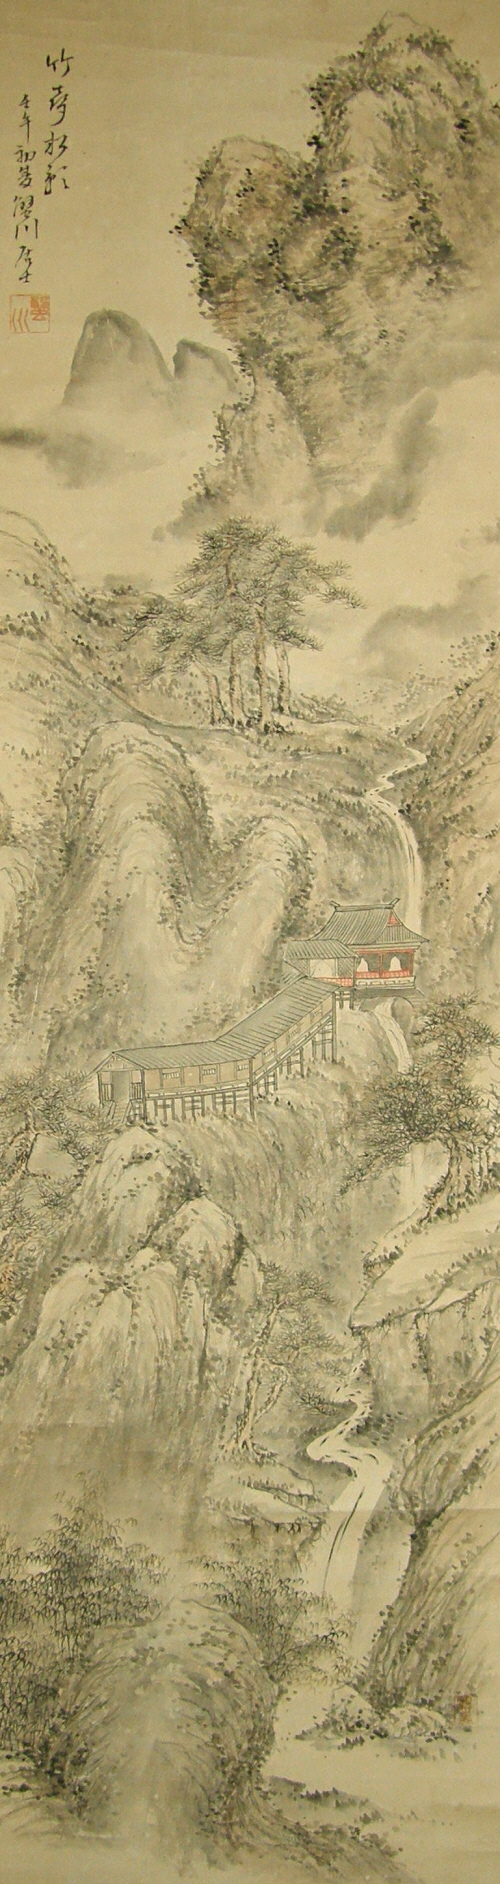 Drawn scenery japanese Ink Drawing Sansui Landscape Drawing